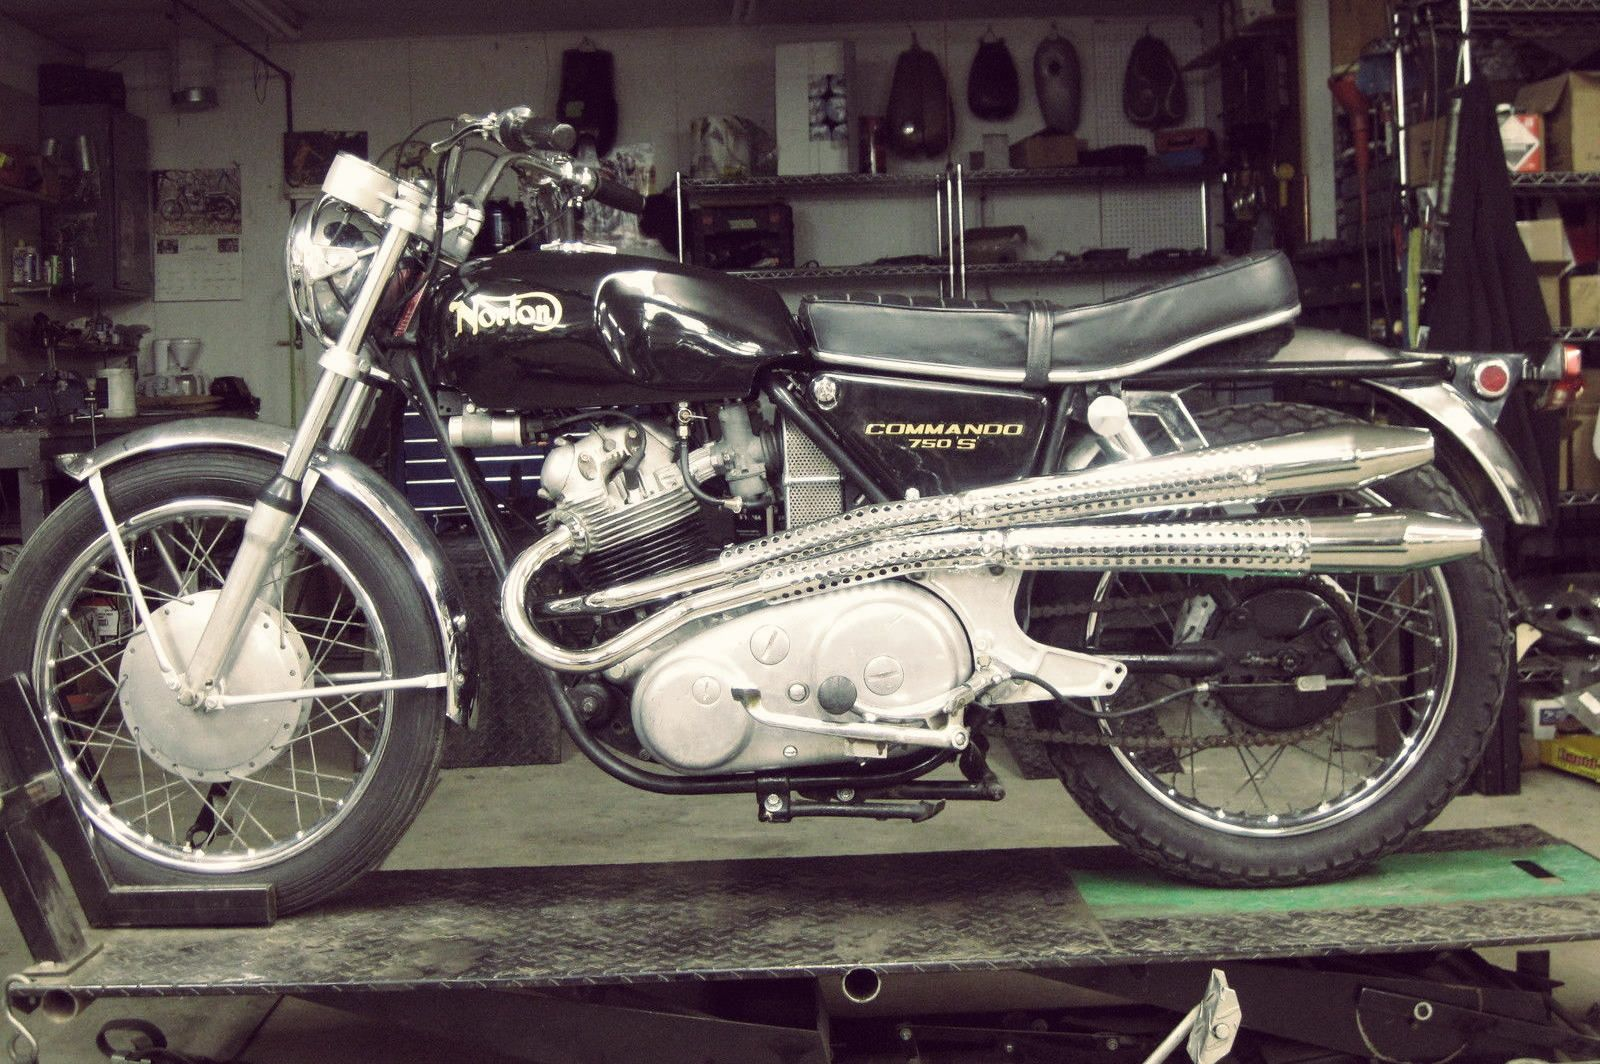 Top 10 Vintage Motorcycles On Ebay Vintage Motorcycles Vintage Motorcycles For Sale Motorcycle